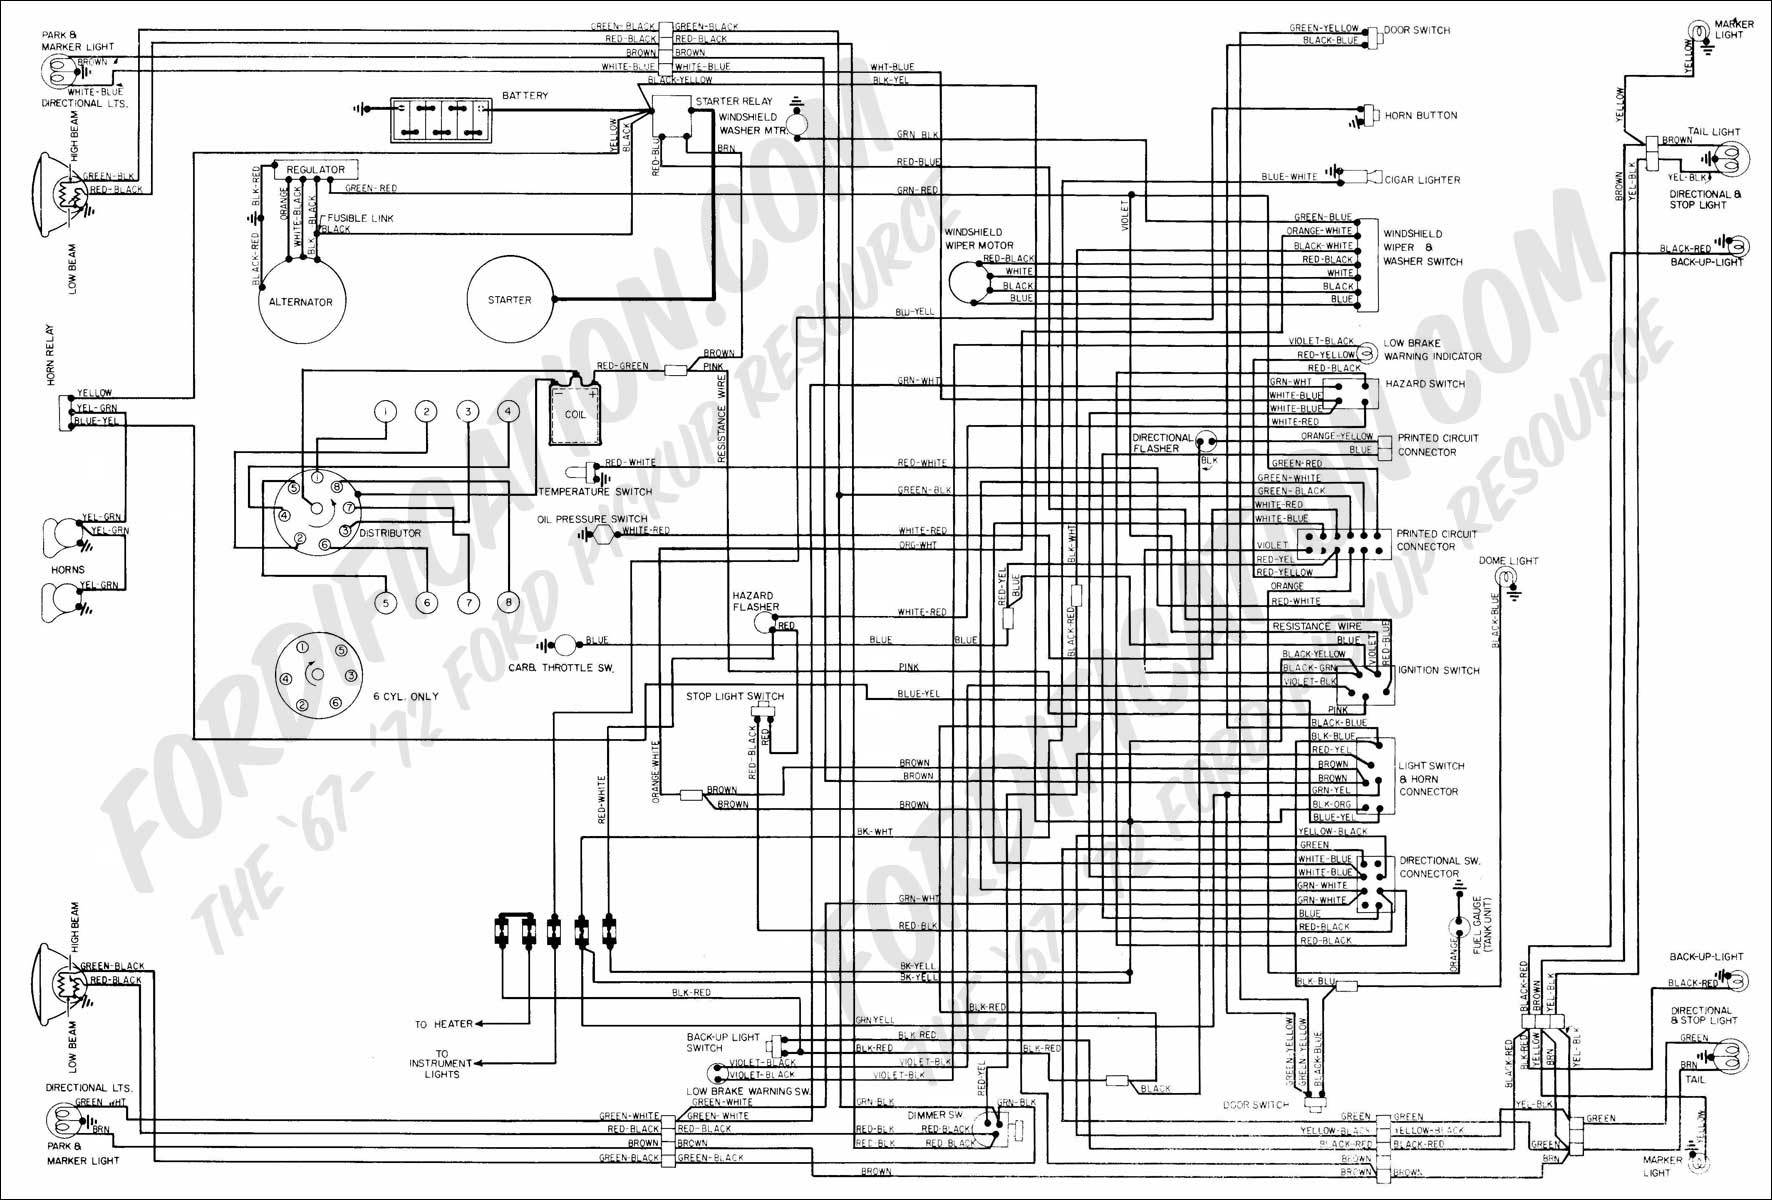 1972 ford f 250 wiring diagram - wiring diagram options versed-deck-a -  versed-deck-a.studiopyxis.it  pyxis